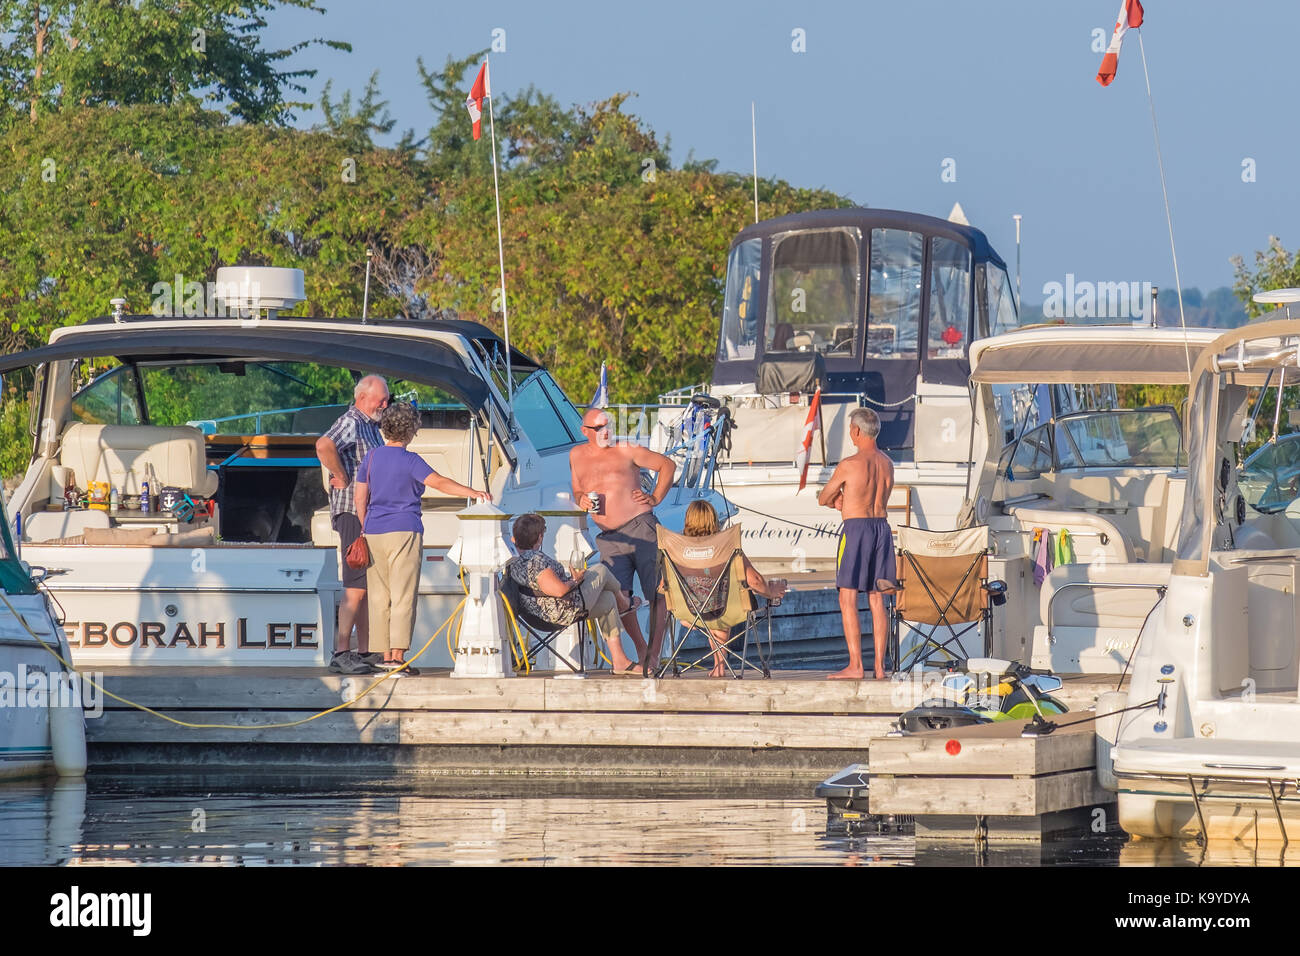 Group of boaters gather on the dock to socialize and enjoy a warm autumn evening in Orillia Ontario Canada. - Stock Image